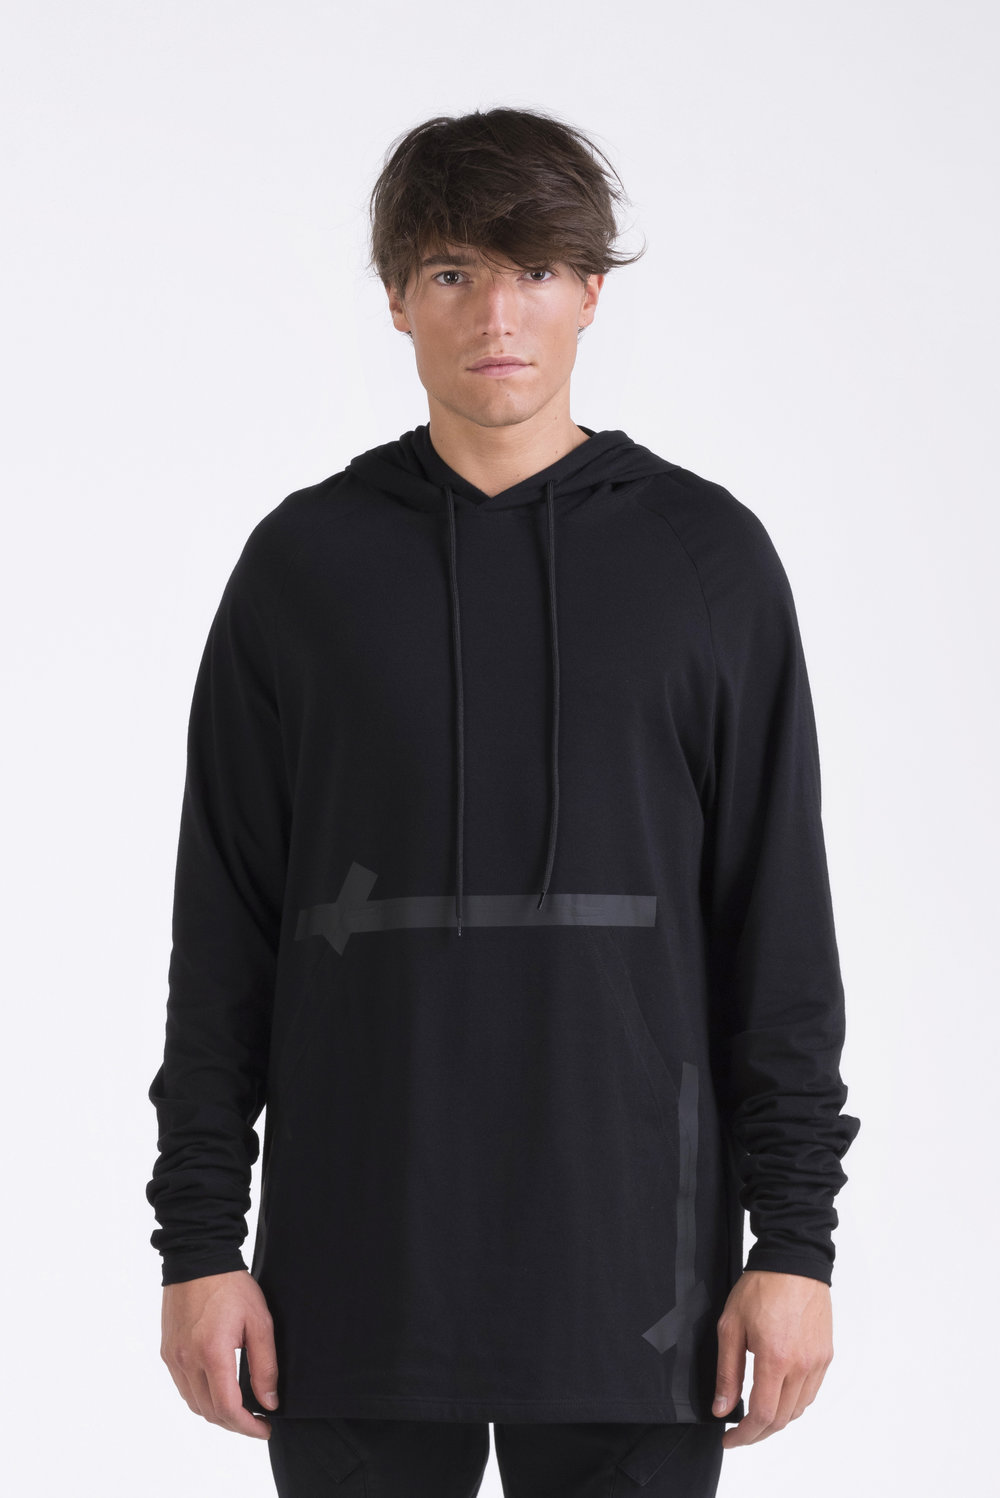 oneculture Oversized light hoodie black 2.jpg